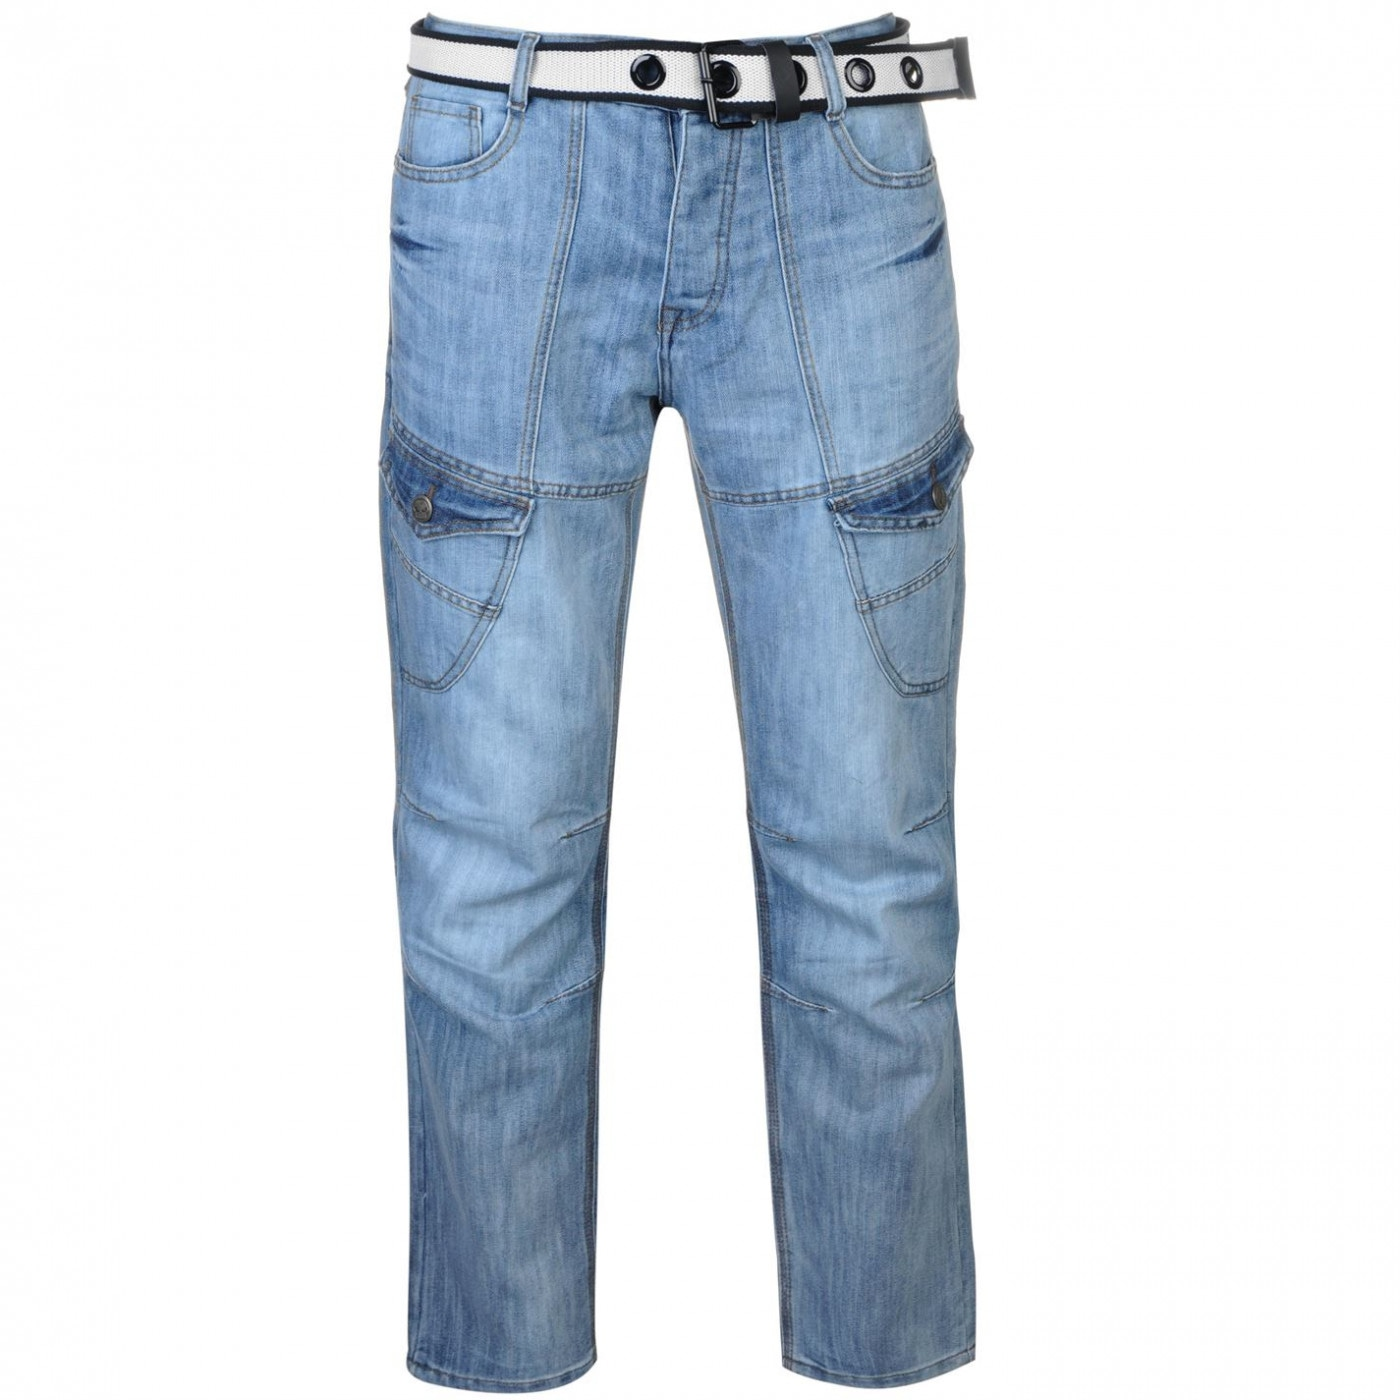 No Fear Belted Cargo Jeans Mens